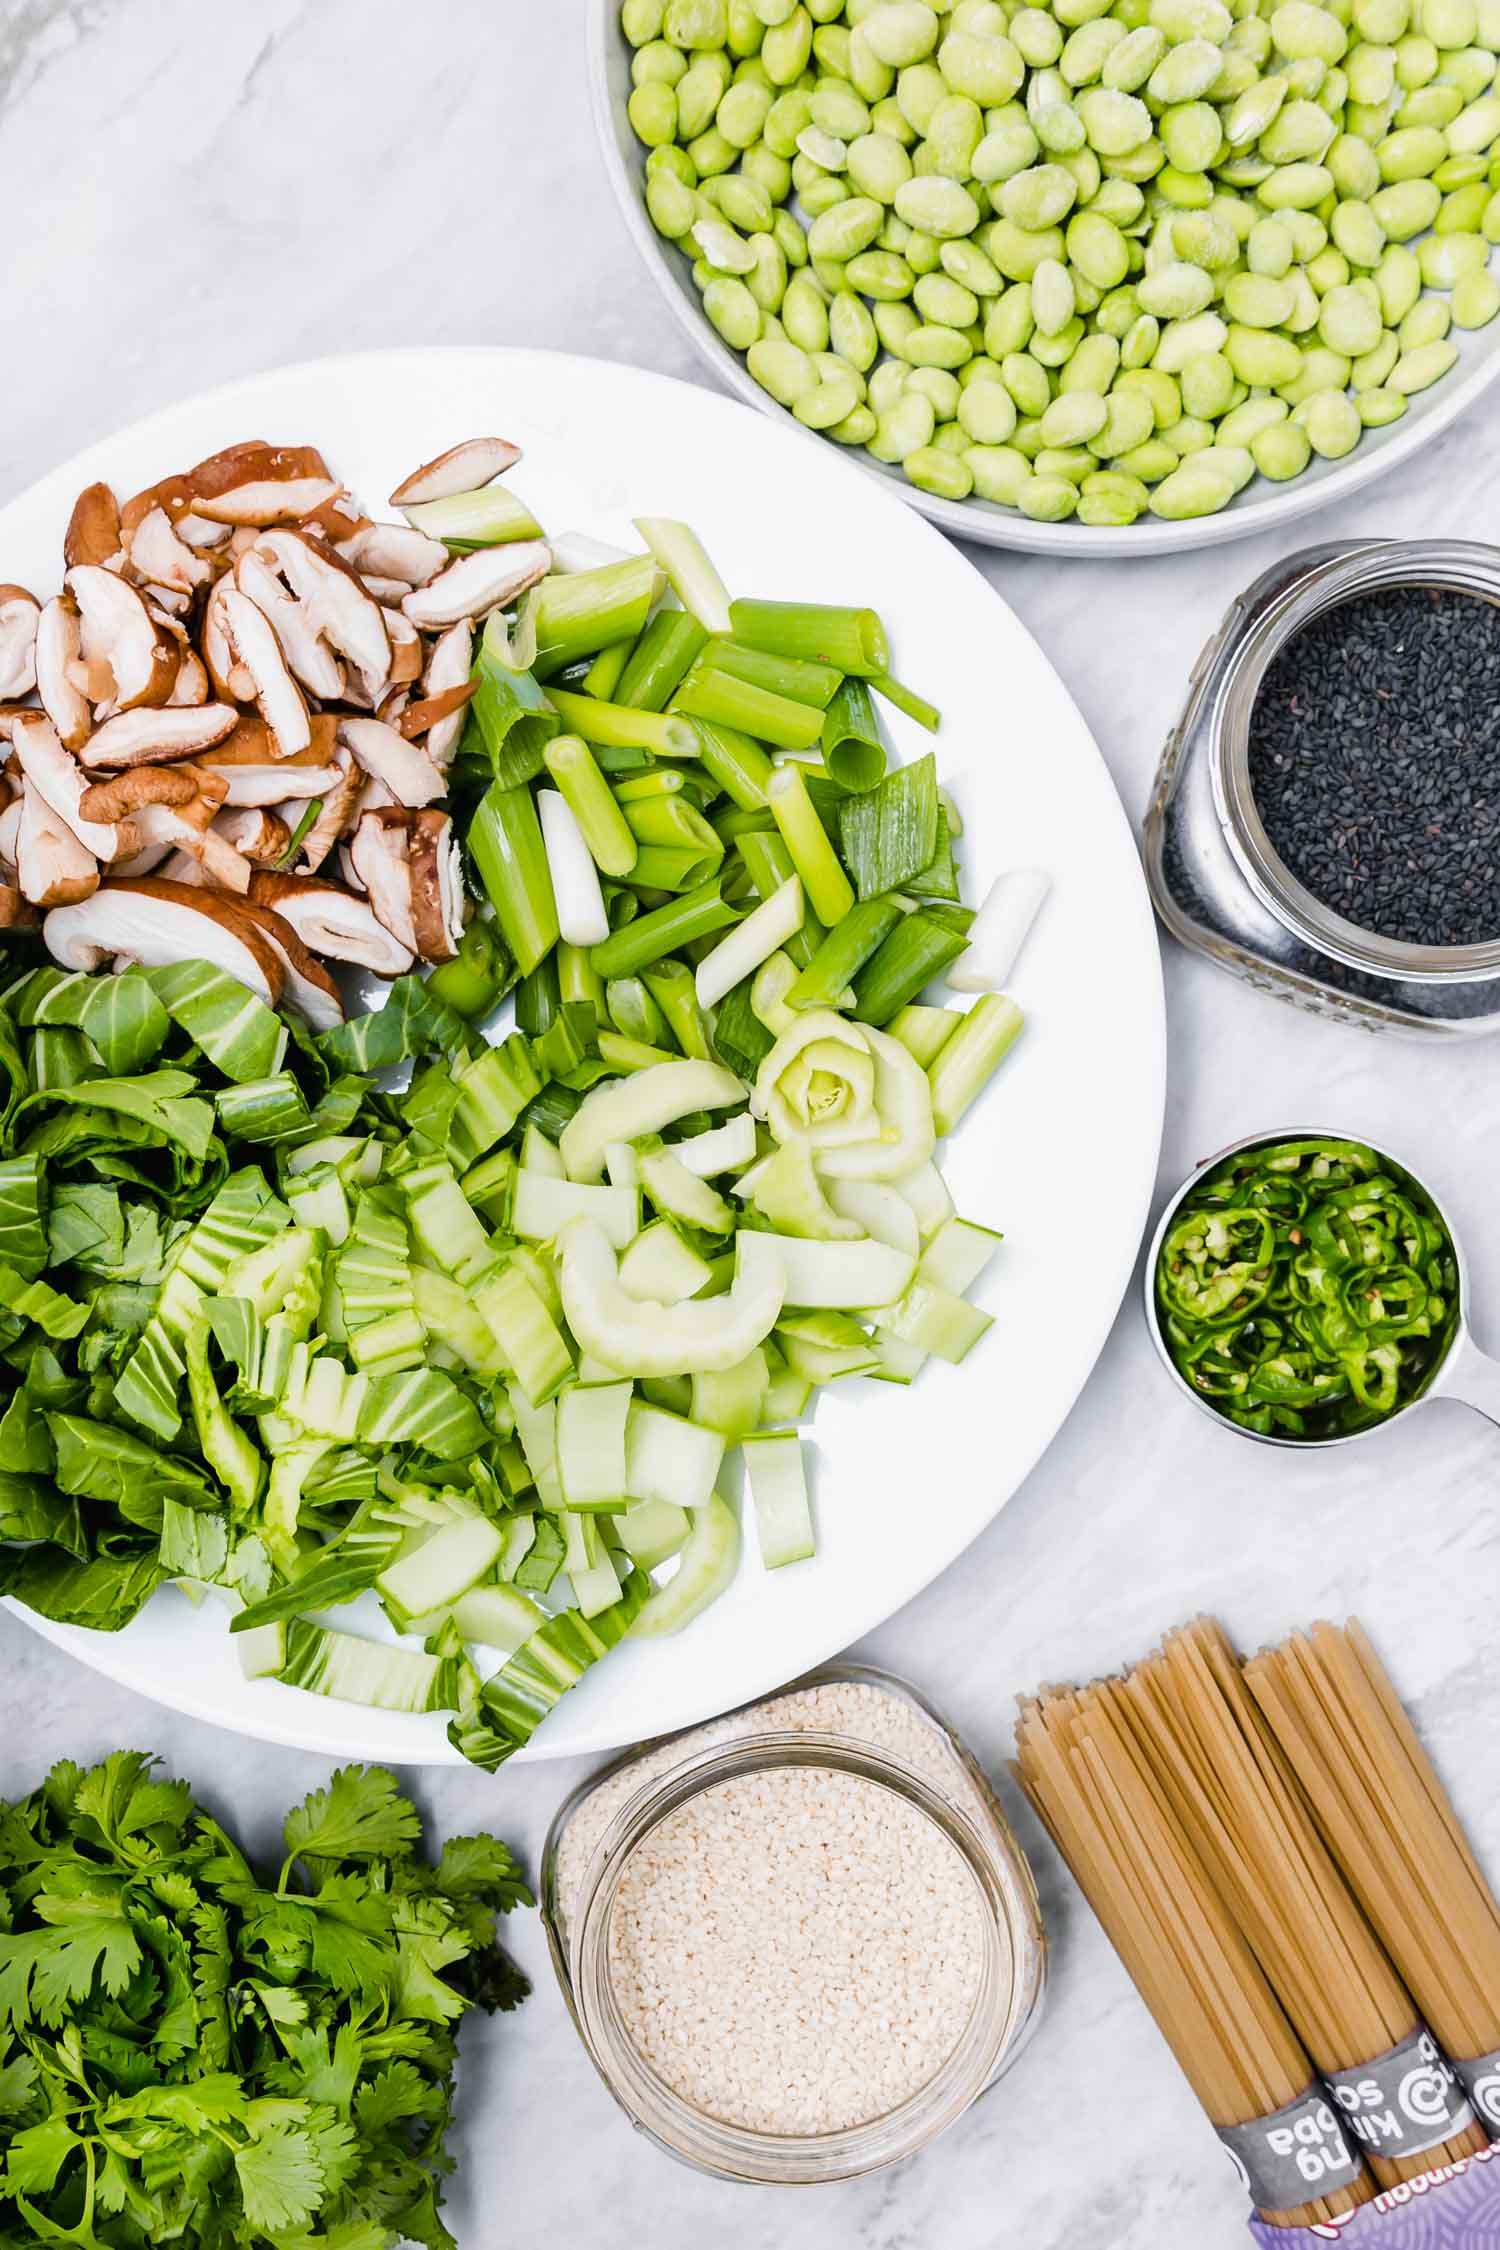 mise en place. Edamame and Bok Choy Sauté with Rice Noodles and Miso Lime Sauce    is plant-based, quick (ready within 30 minutes from chopping to plating), easy, gluten-free, oil-free, nut-free, veggie-packed (with three servings of veg per person - including one cruciferous), satisfying (with a serving of beans per person), and great all year round, especially during the fall/winter seasons. #vegandinner #ricenoodles #misosauce #wfpb #dinner #plantbased #edamame #bokchoy